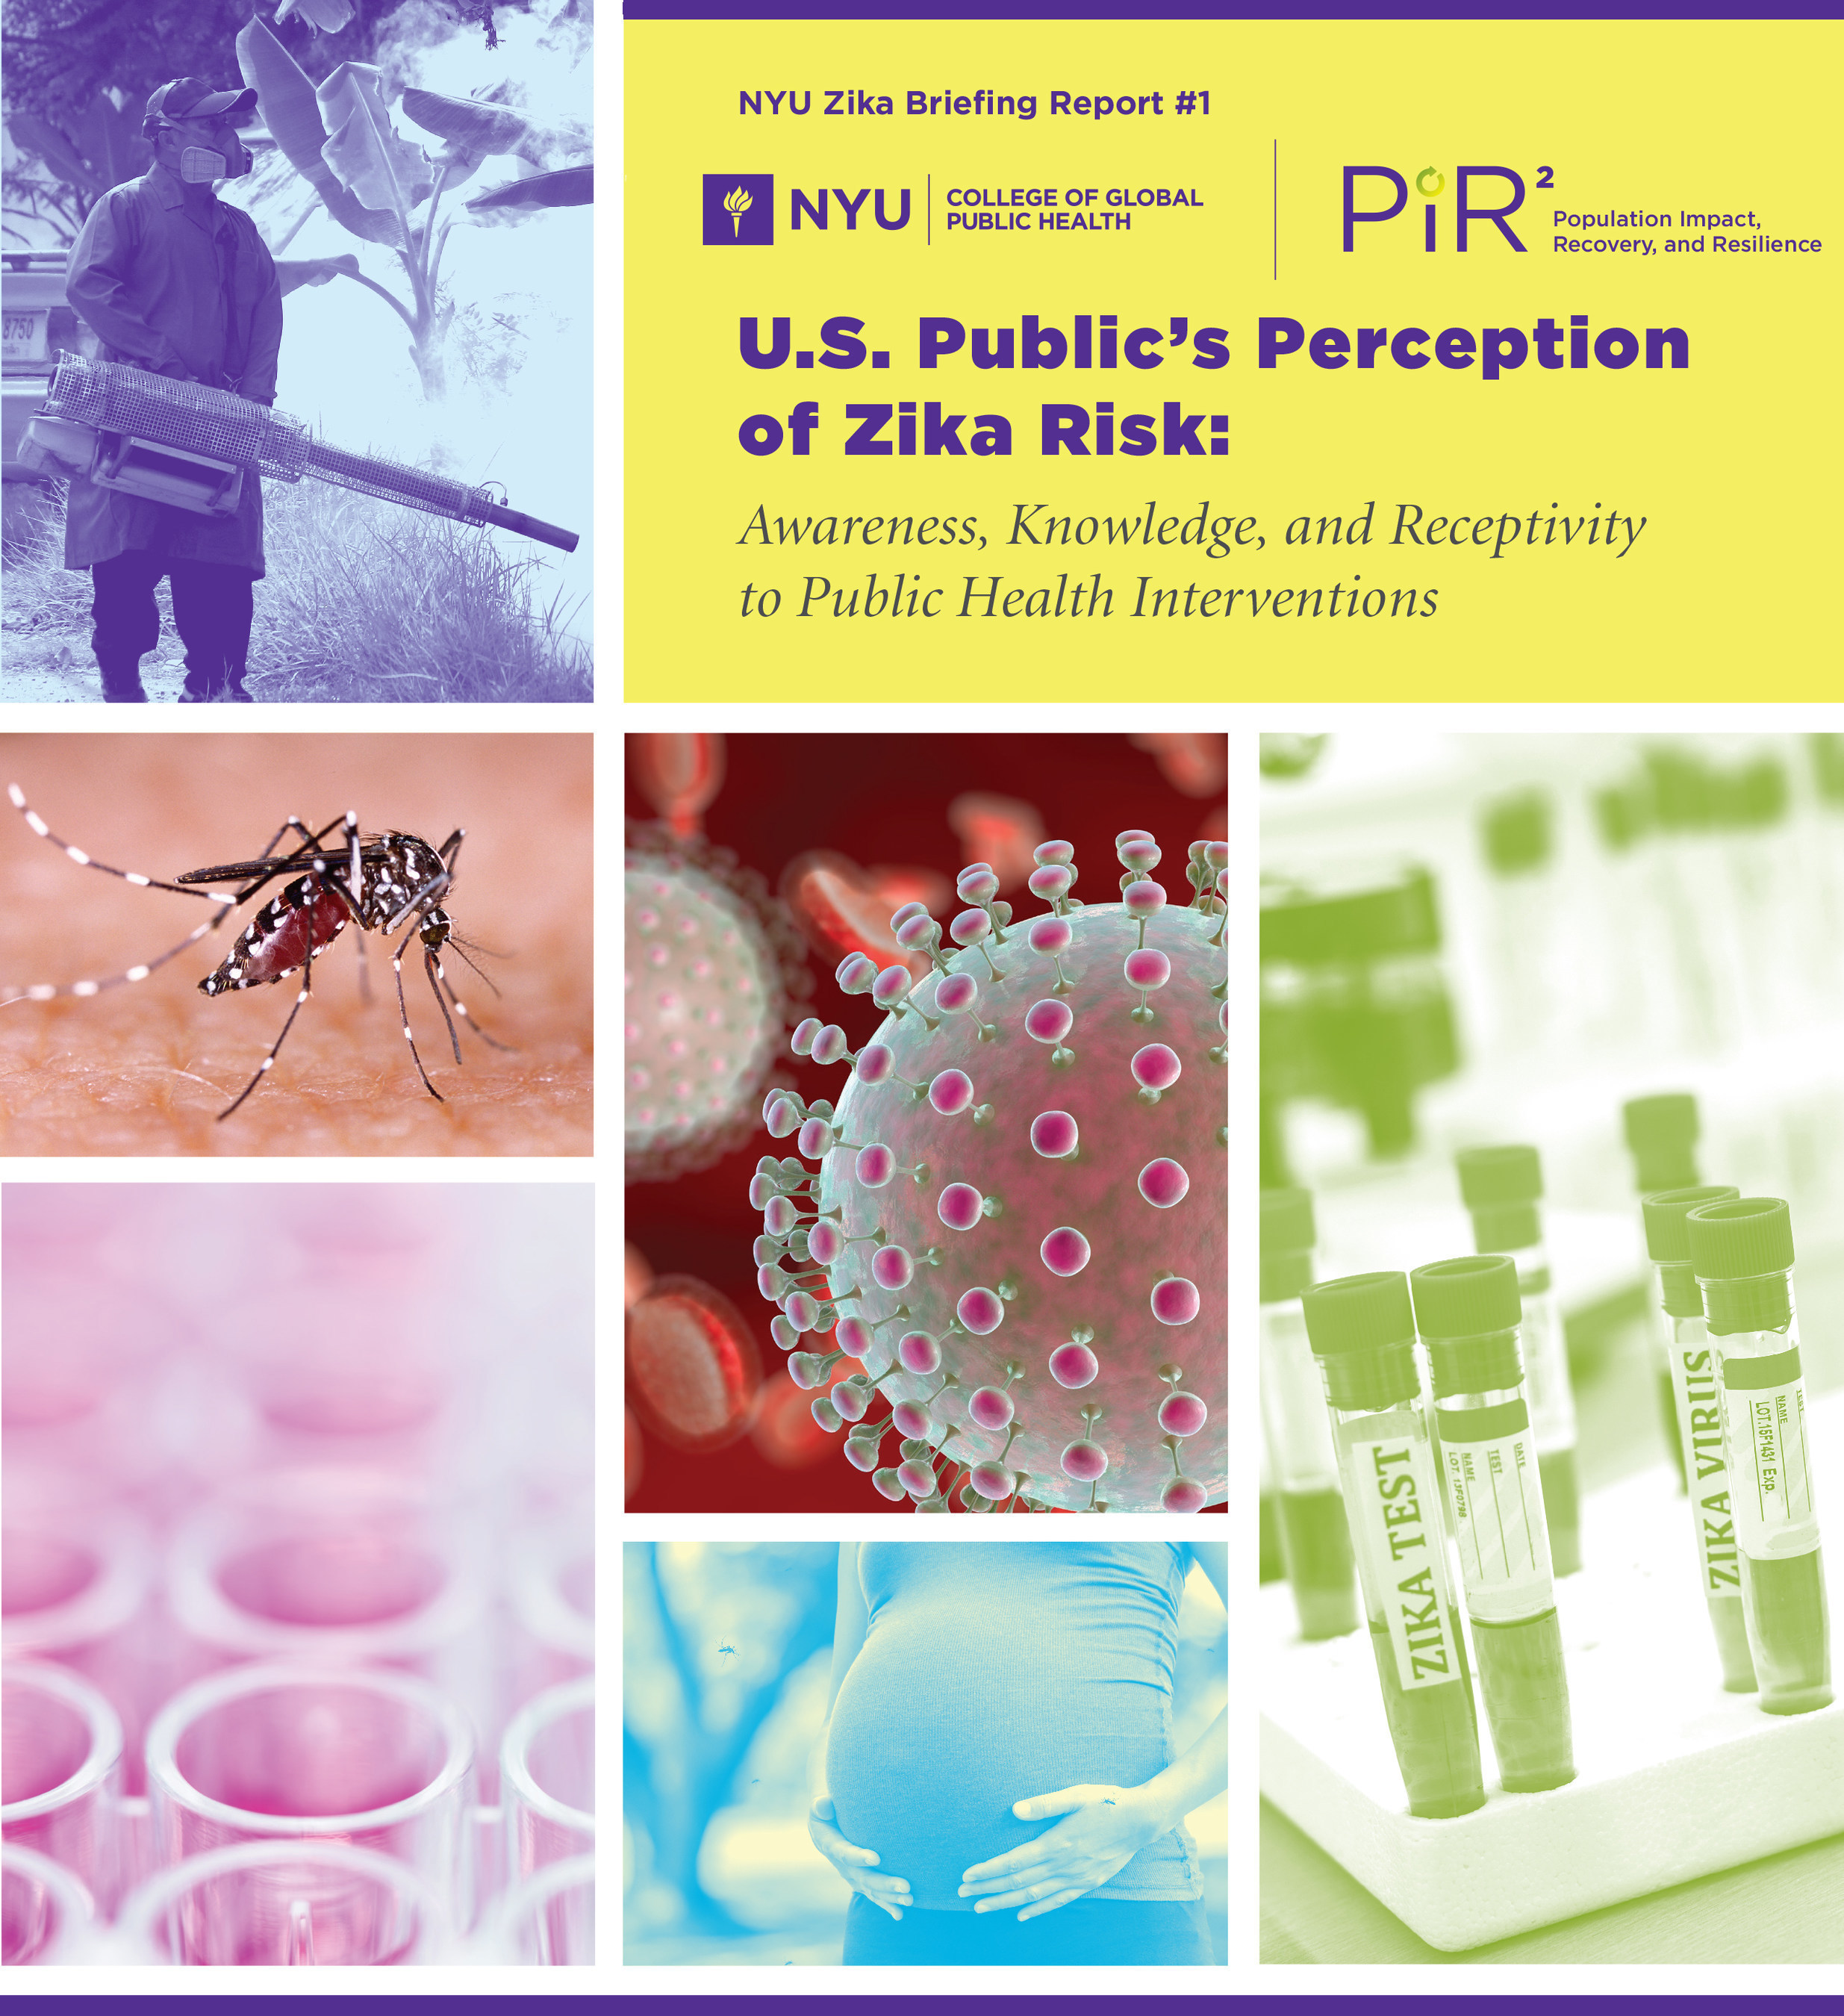 "The study, ""U.S. Public's Perception of Zika Risk: Awareness, Knowledge, and Receptivity to Public Health Interventions,"" by the Program for Population Impact, Recovery and Resilience (PiR2) at NYU CGPH, notes that even though a large majority of the public is aware of the Zika virus, people are split on their support for various public health interventions to prevent or address Zika infections."